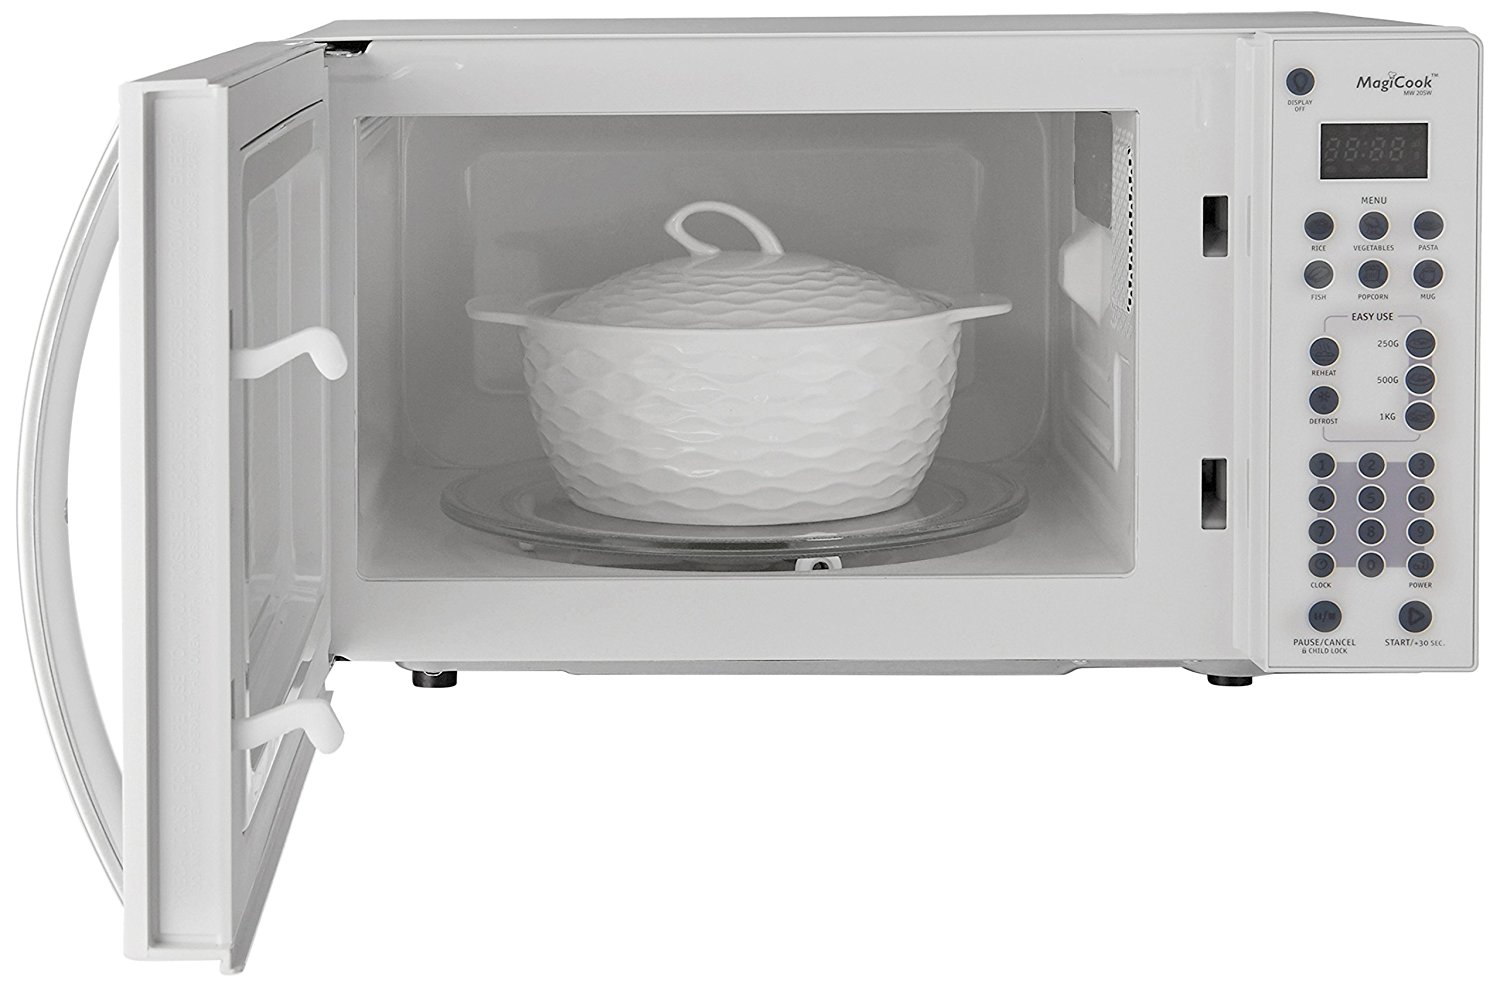 Whirlpool solo 20 liters microwave oven